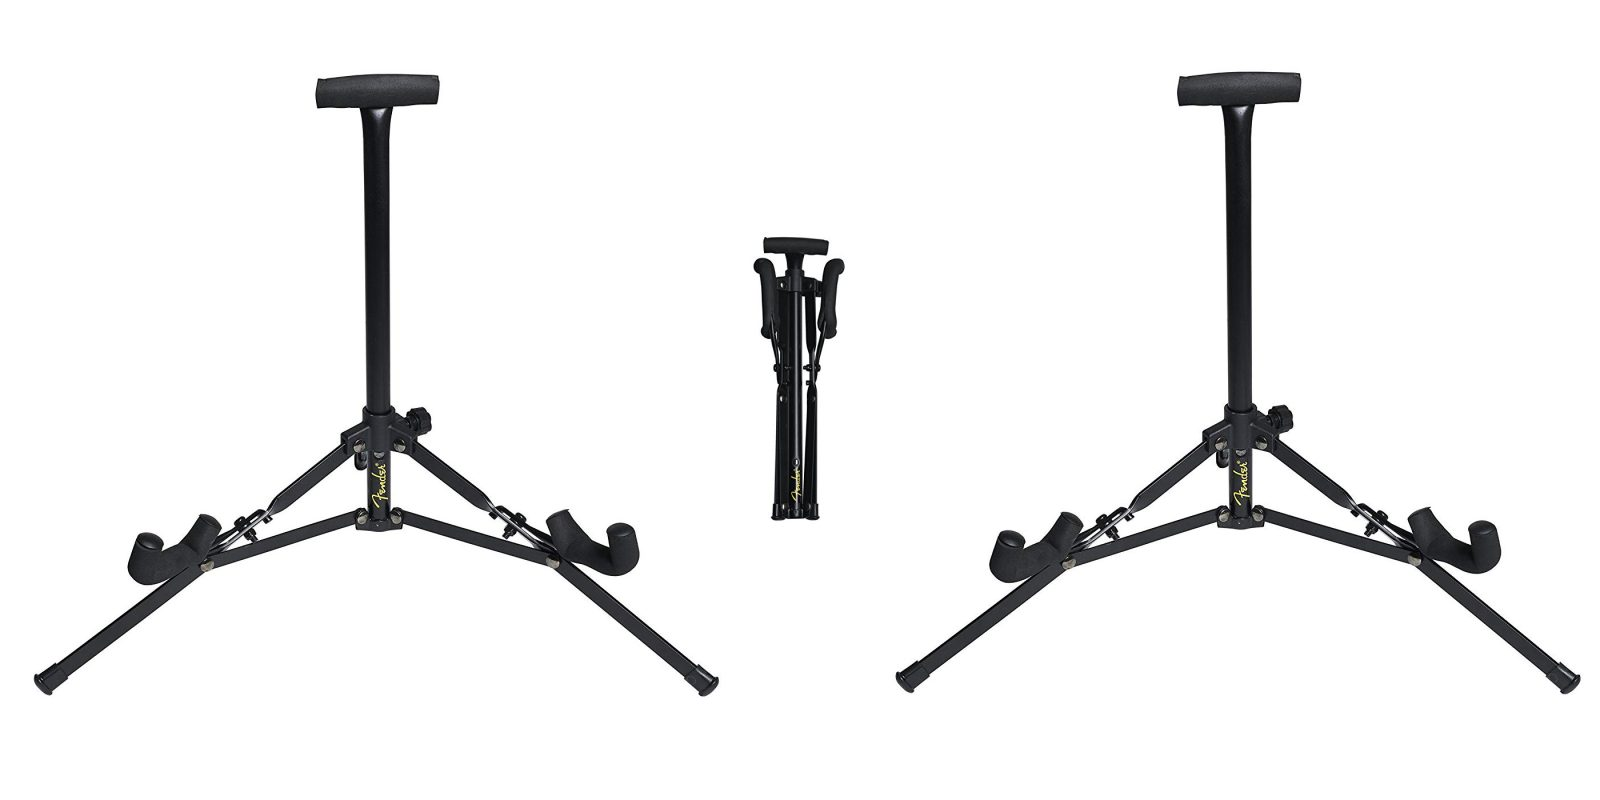 Bring Home A Fender Stand At Just 5 For Your New Acoustic